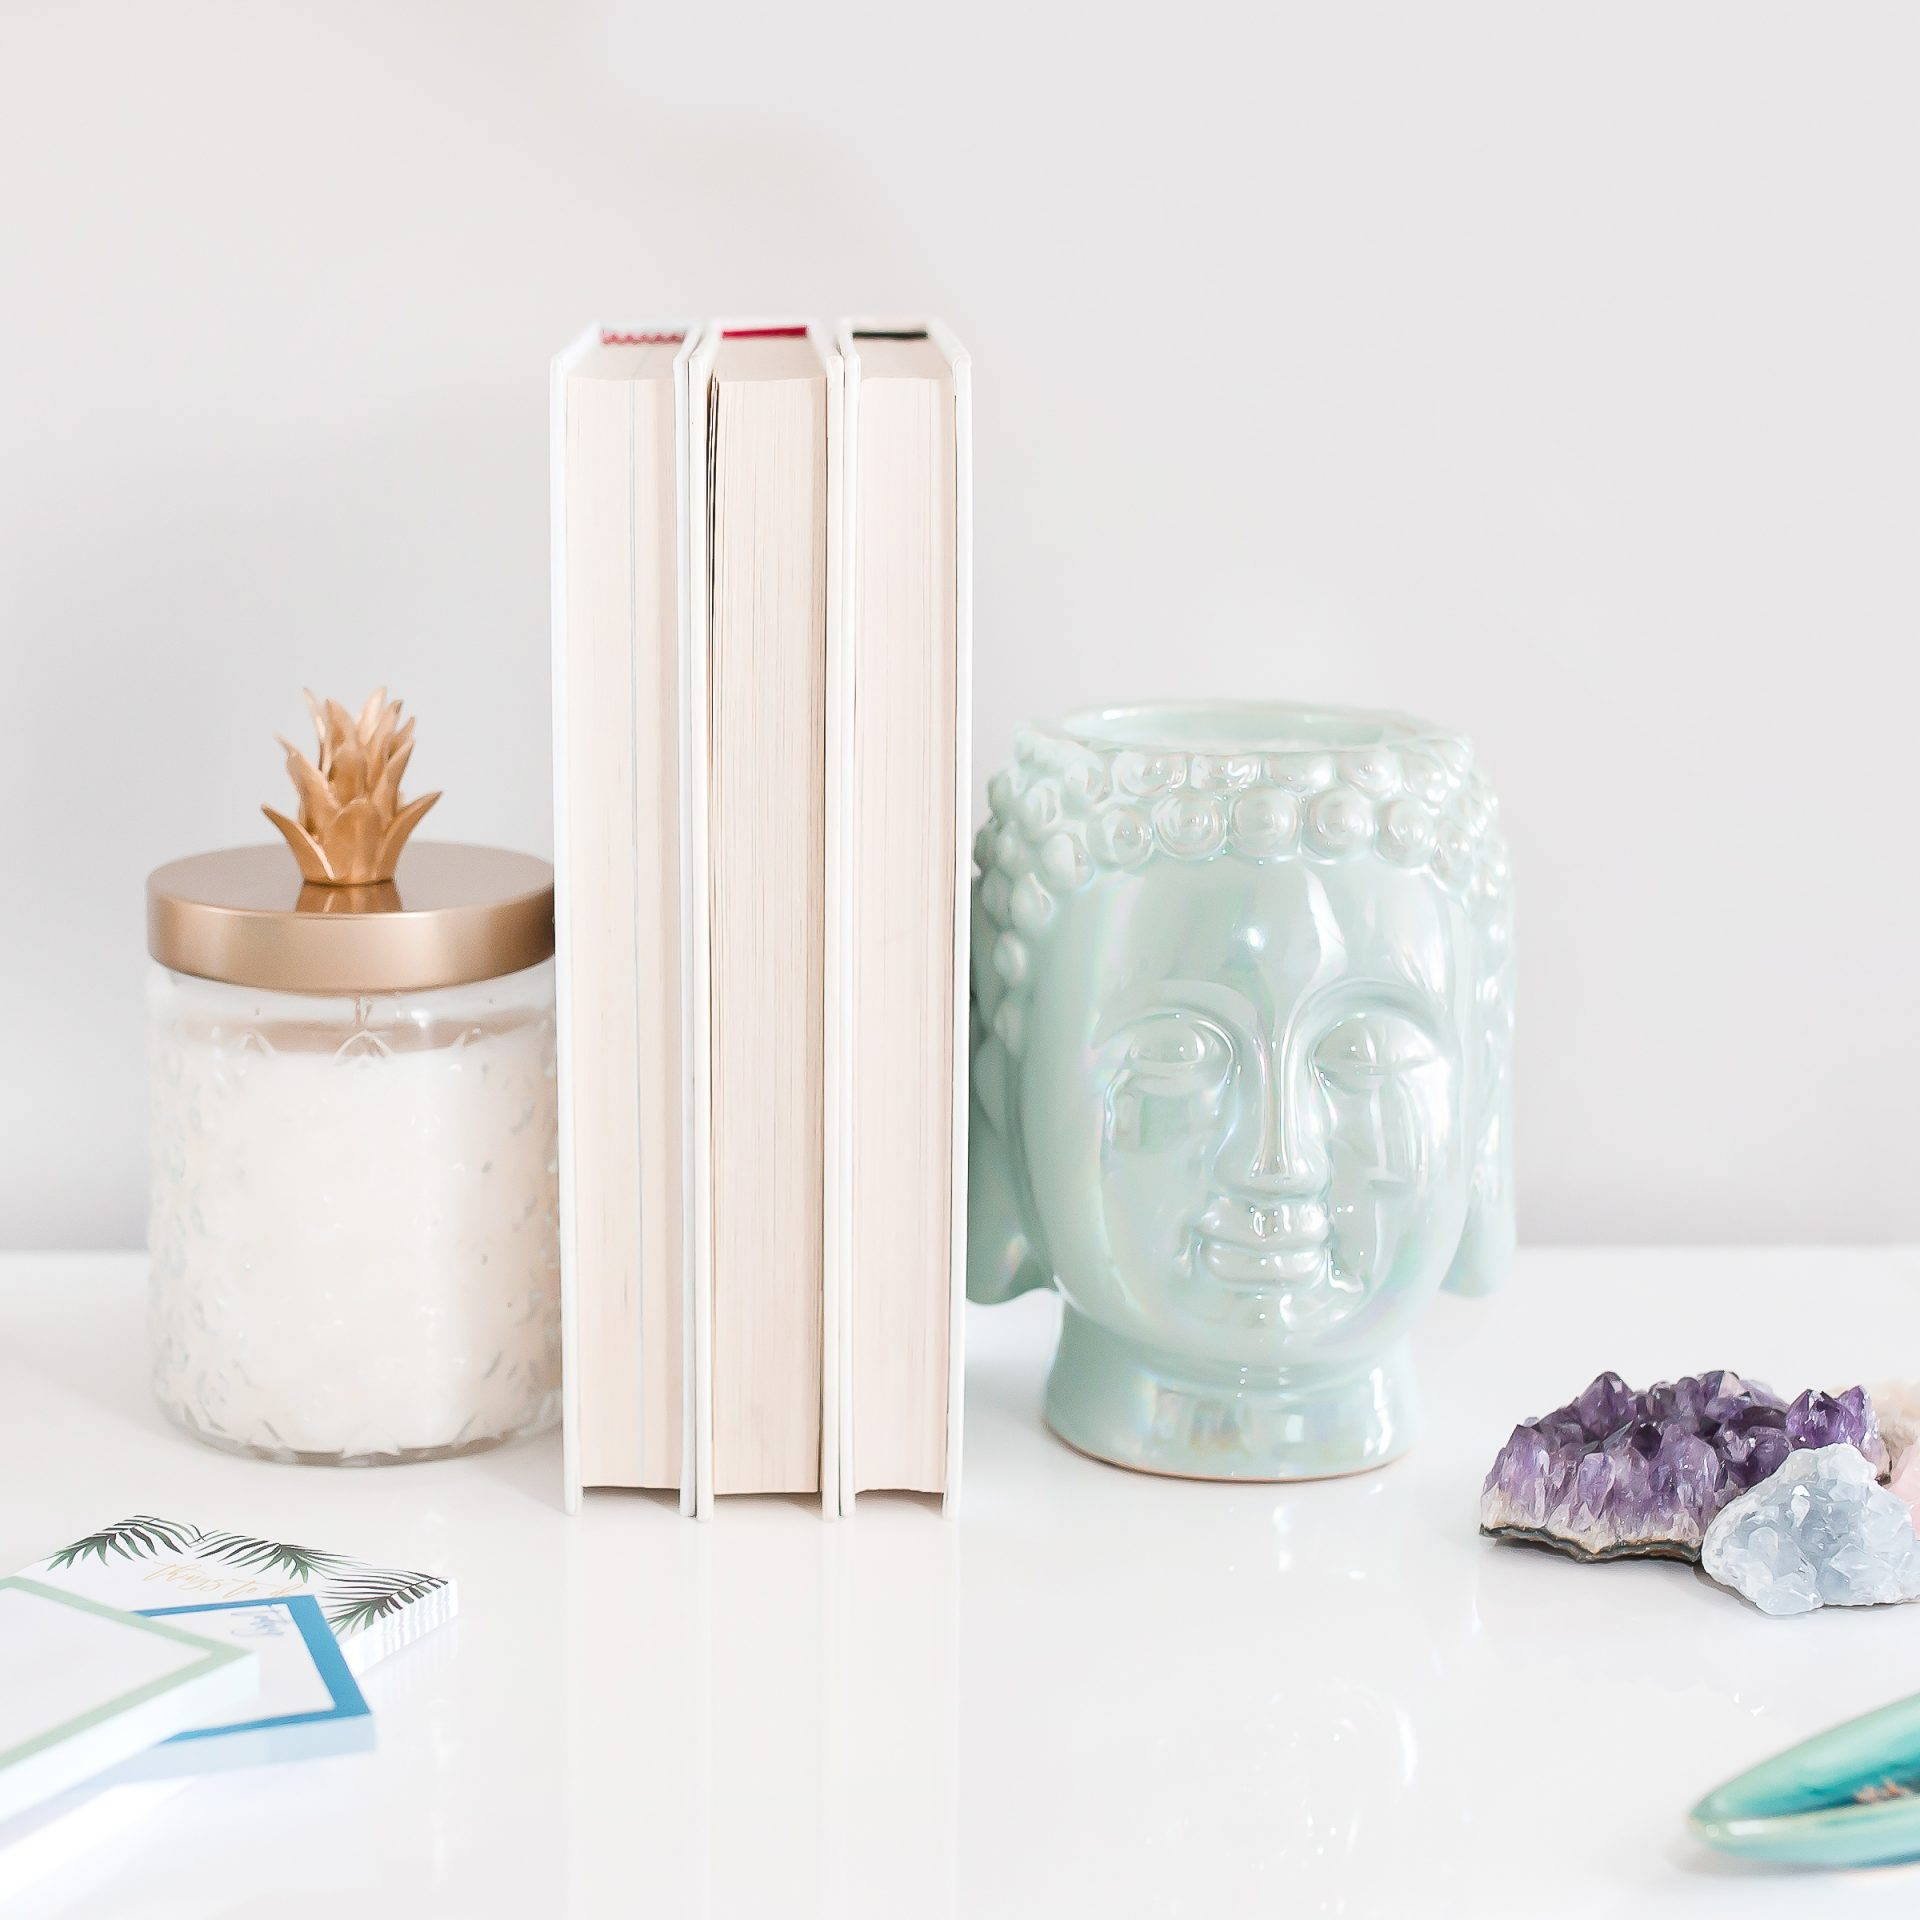 jade head statue and amethyst crystals on desk in home office